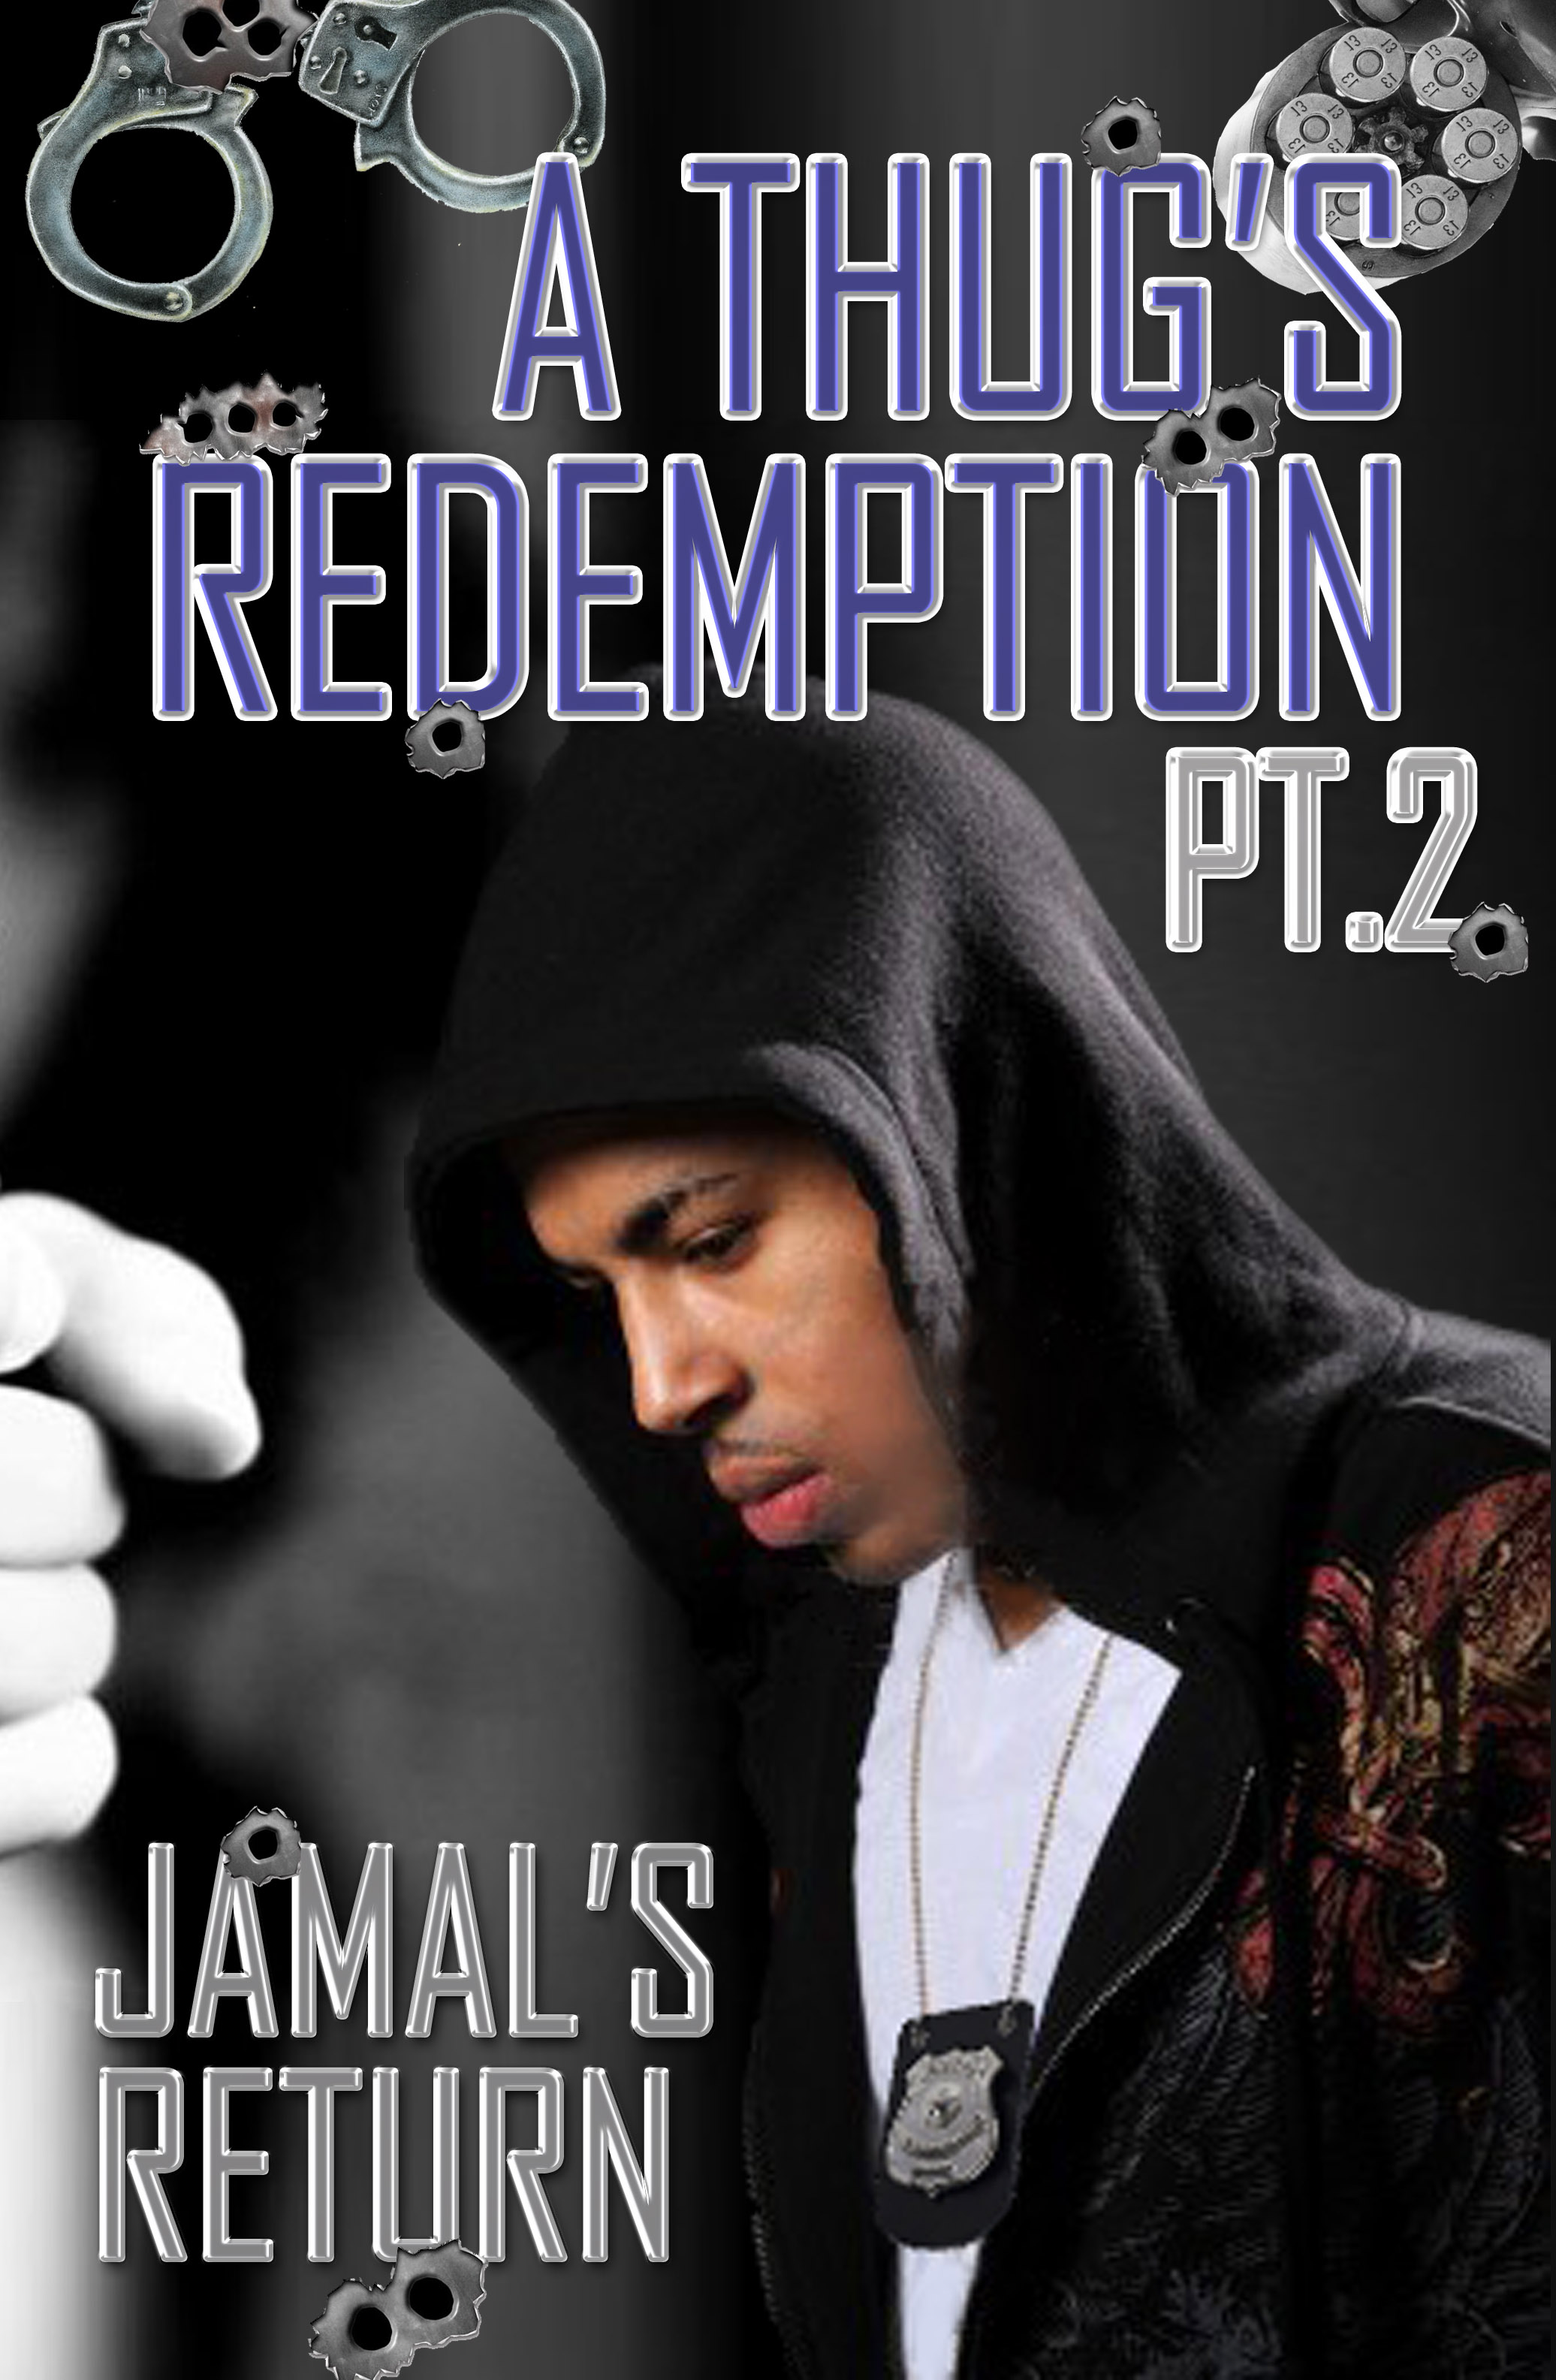 A Thug's Redemption 2: Jamal's Return